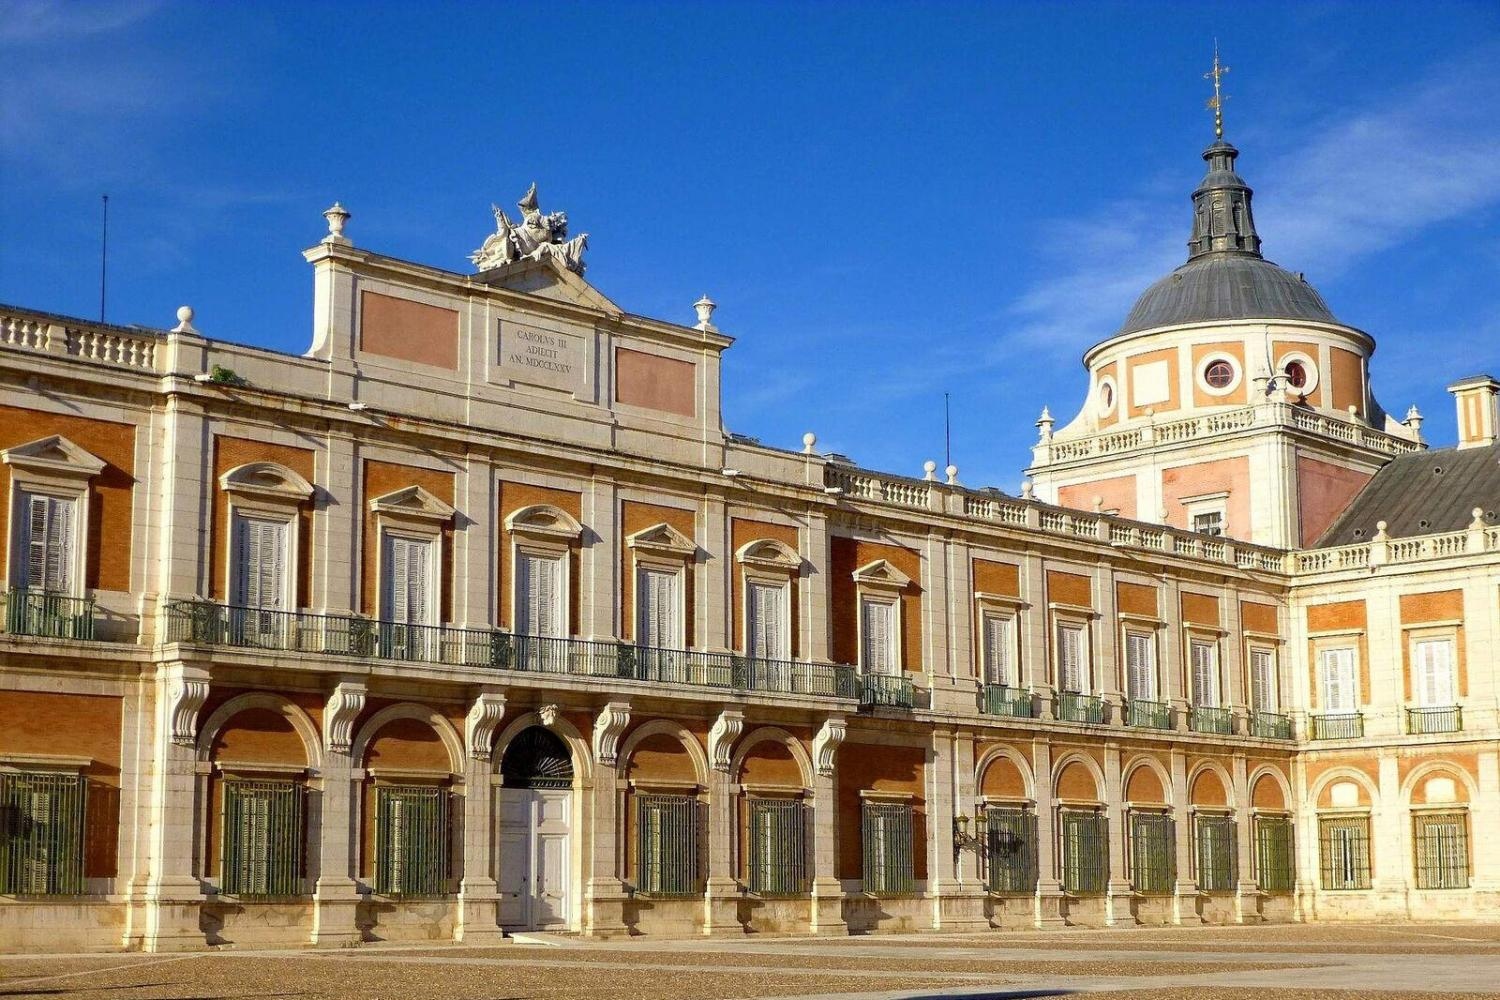 Royal Site Of Aranjuez Half-Day Tour From Madrid